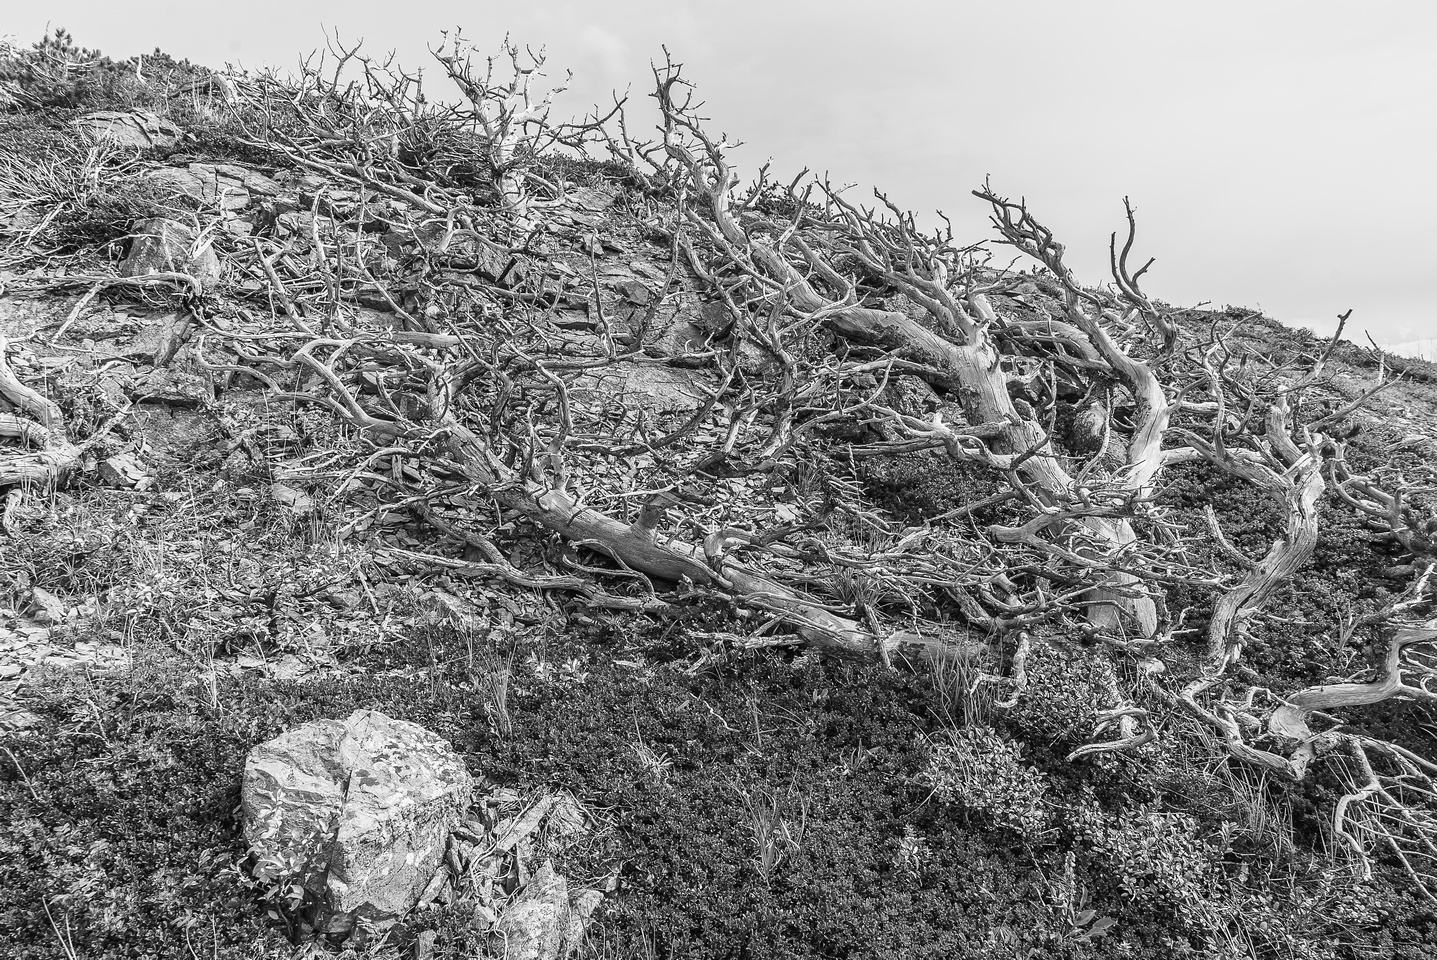 I love these old, twisted up trees.